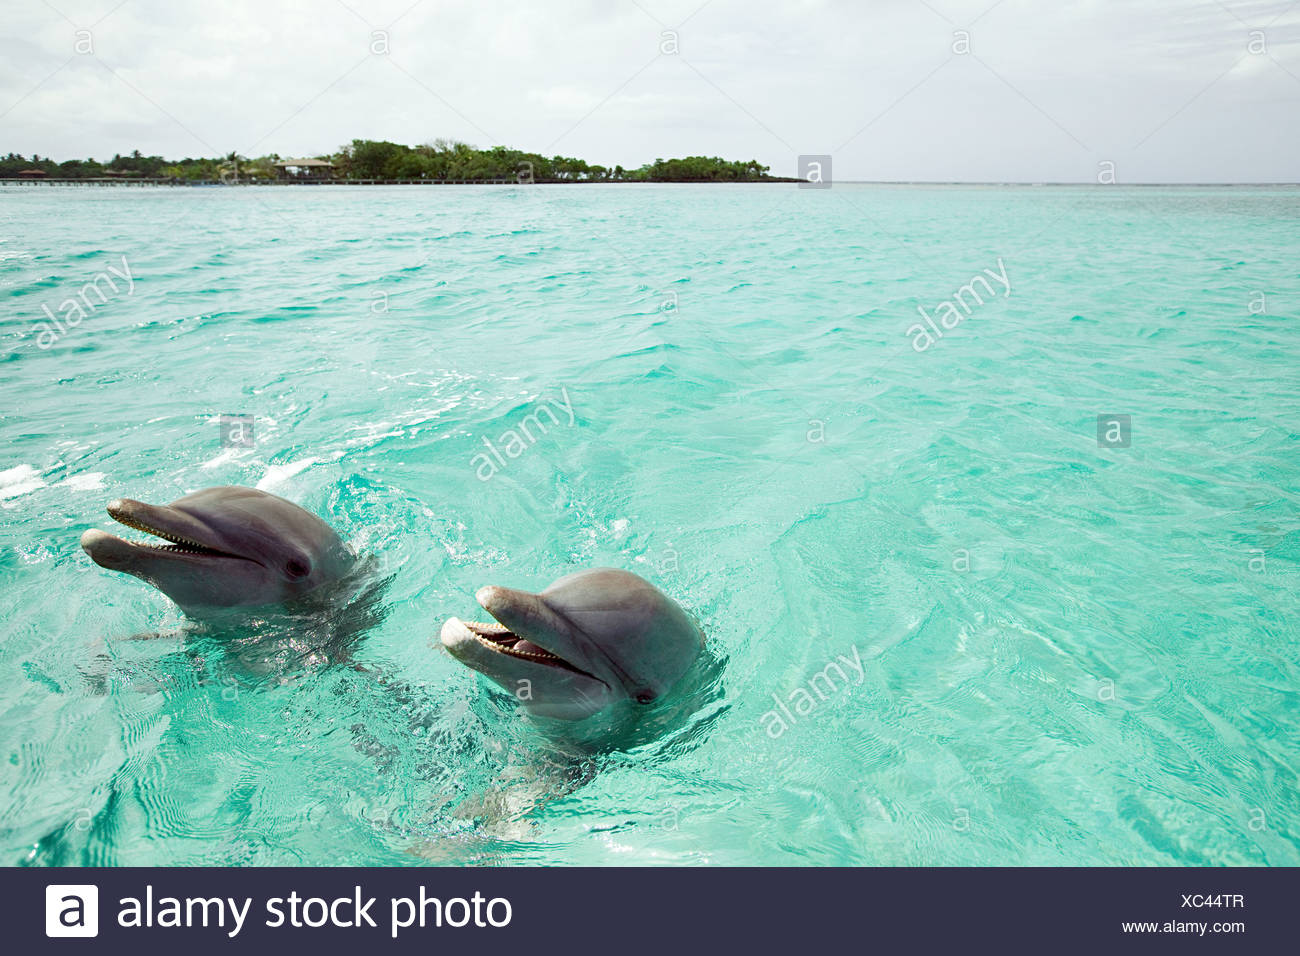 Bottlenose dolphins emerging from sea - Stock Image